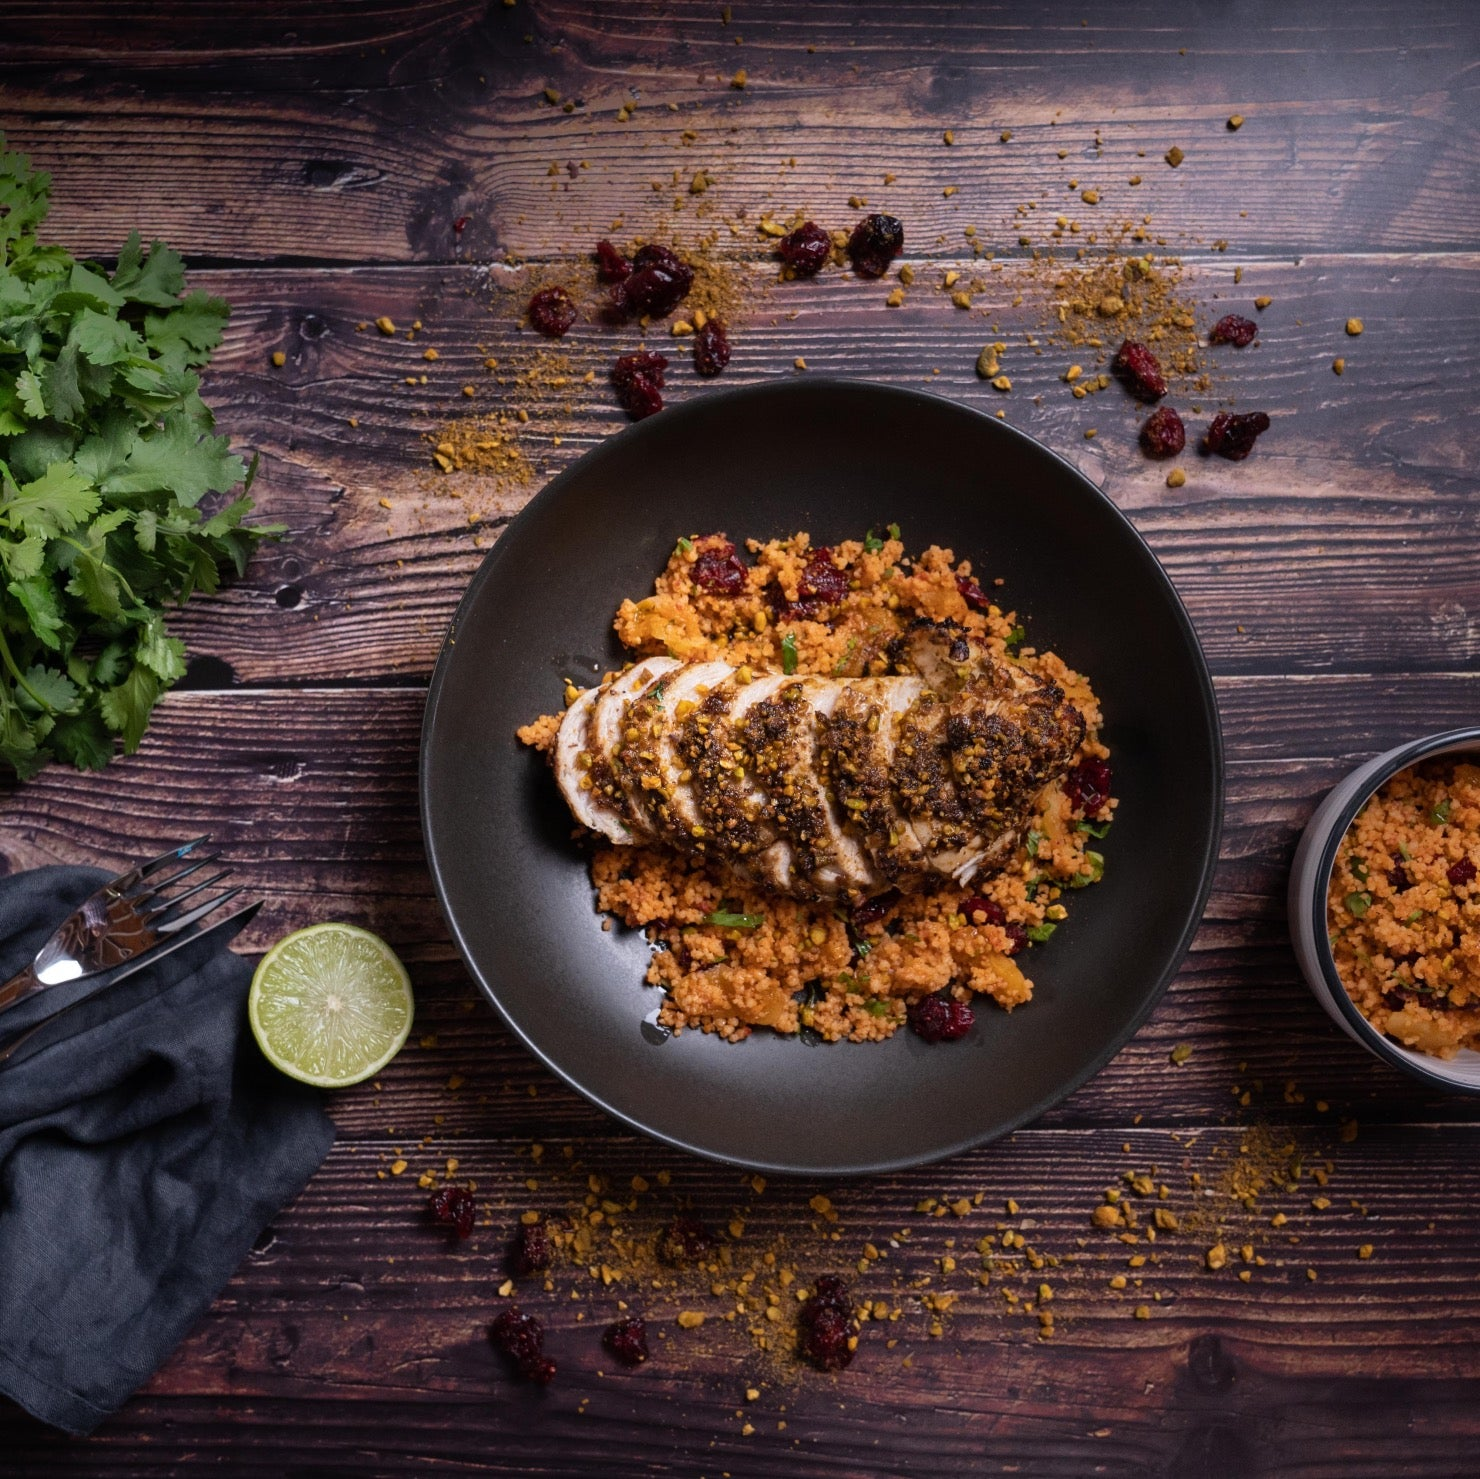 Dukkah Chicken and couscous on a plate